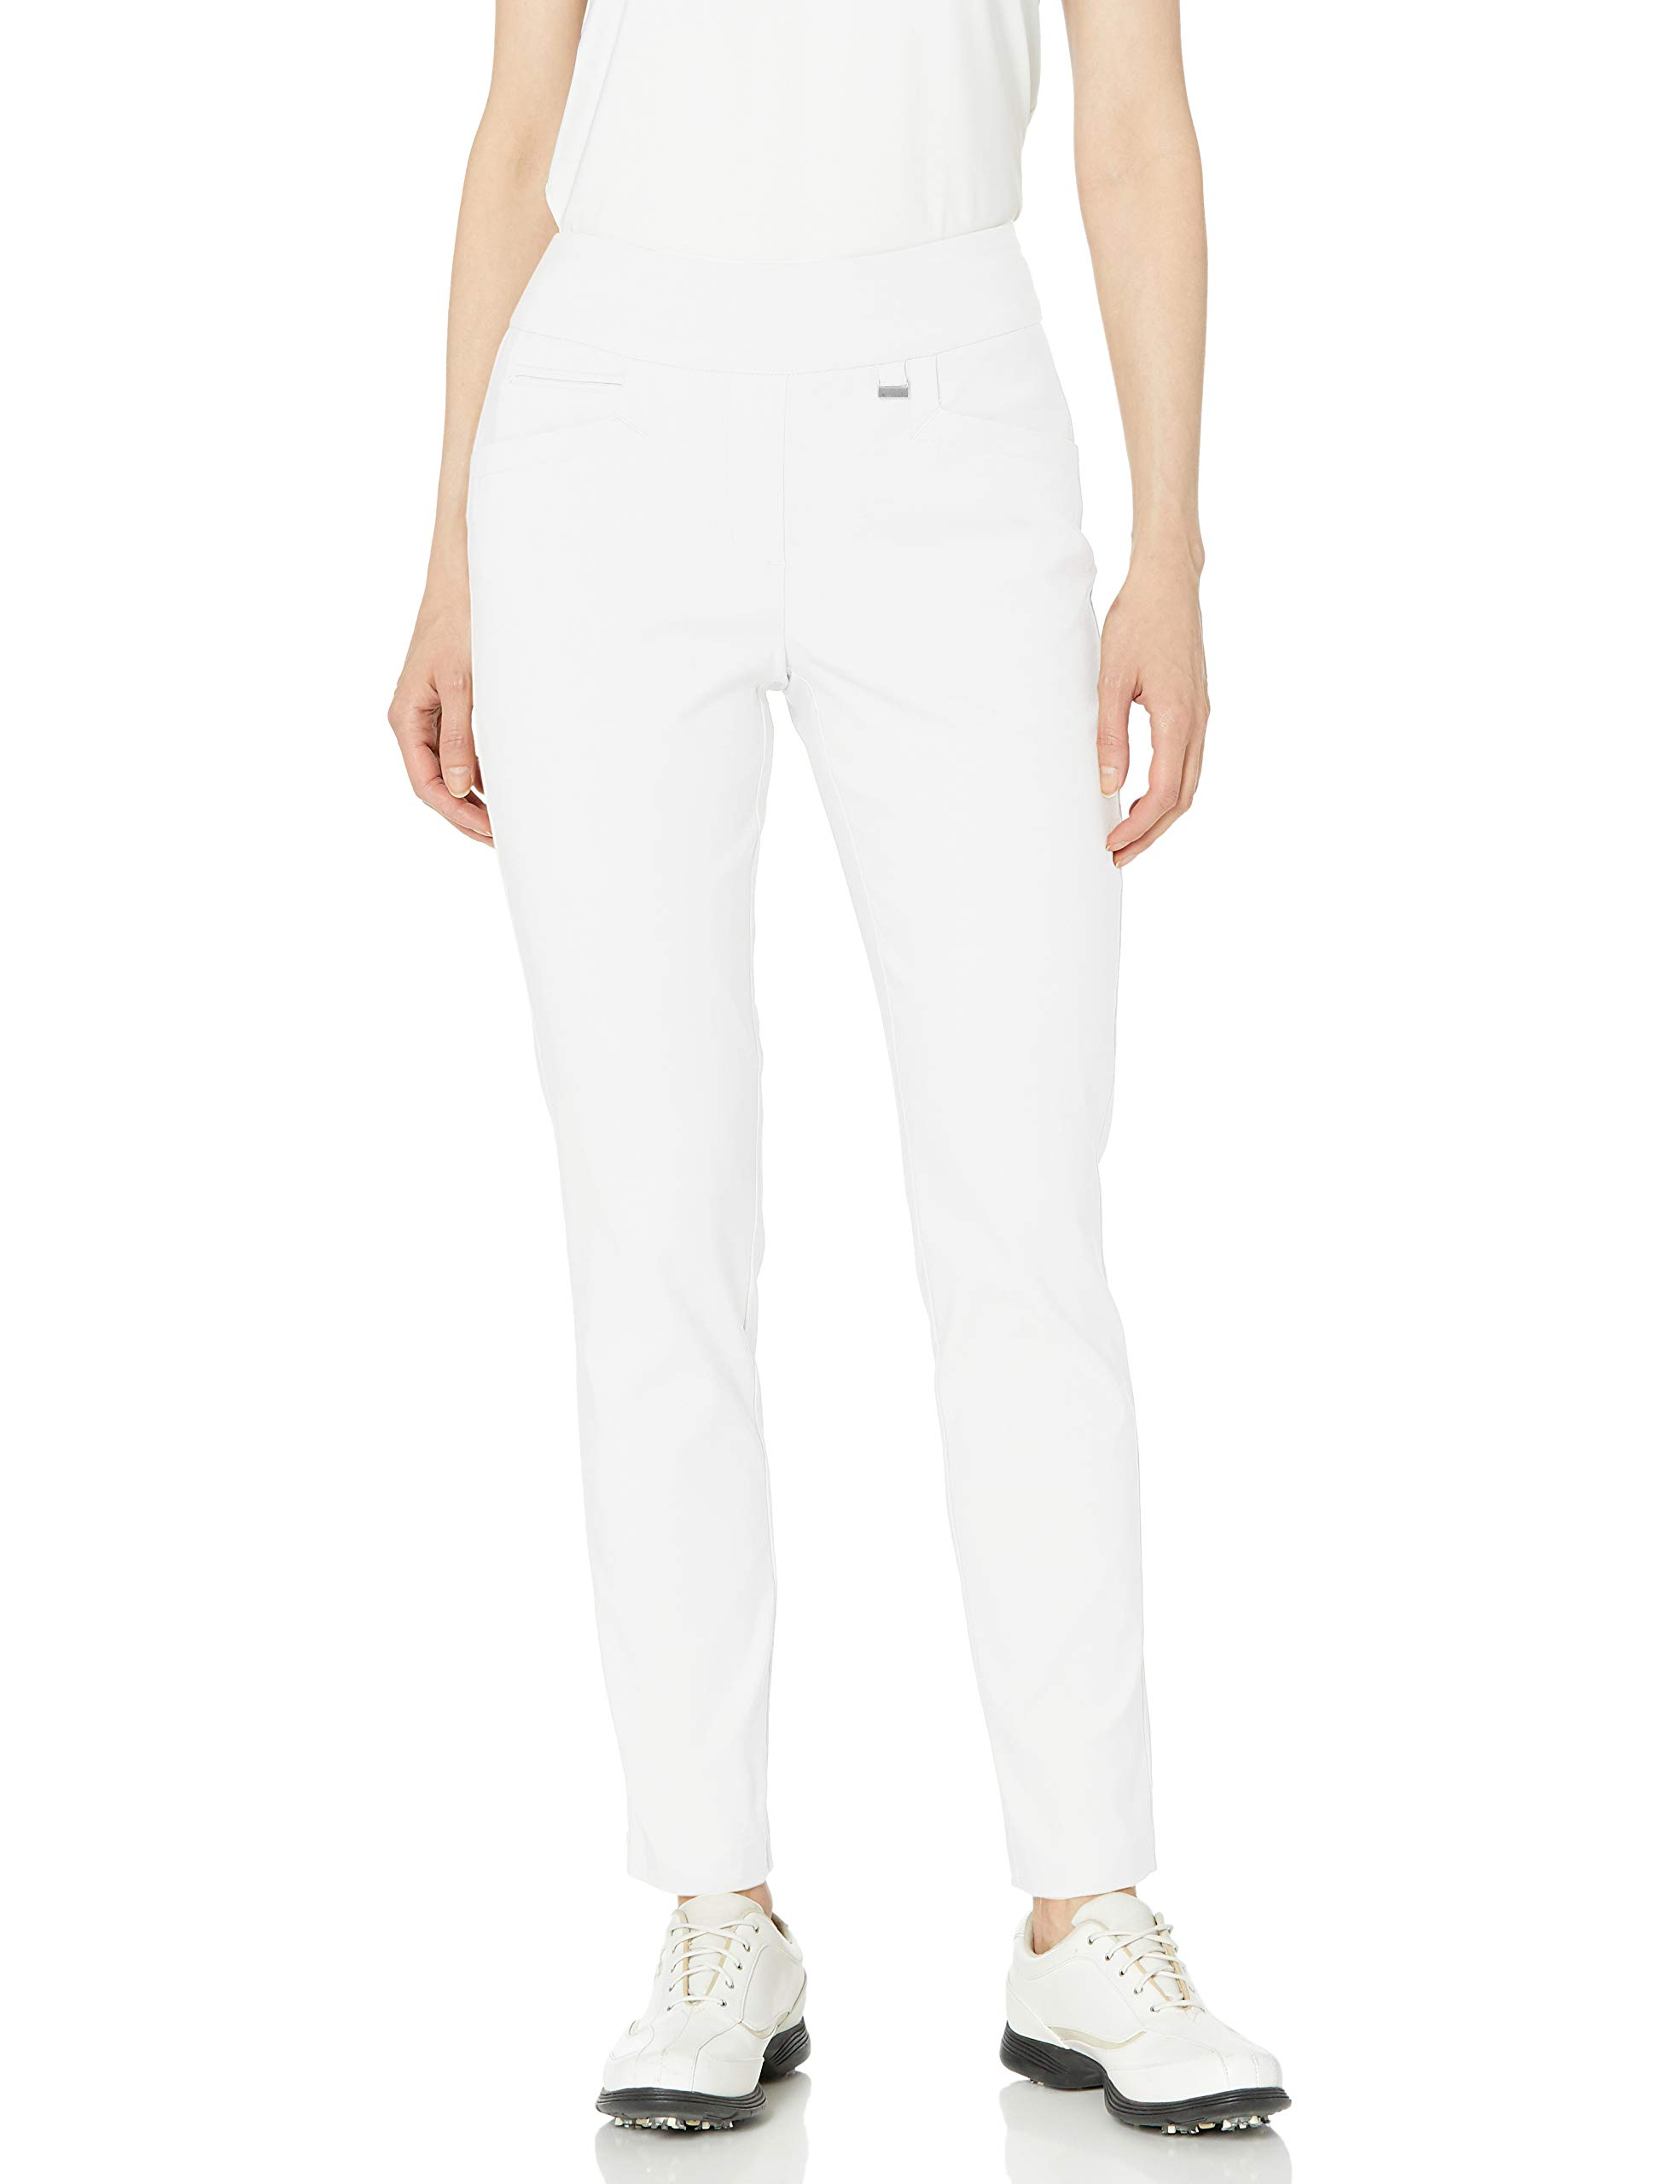 EP Pro Golf Women's Bi-Stretch Pull-on Slim Ankle Pants, Large, White by EP Pro Golf